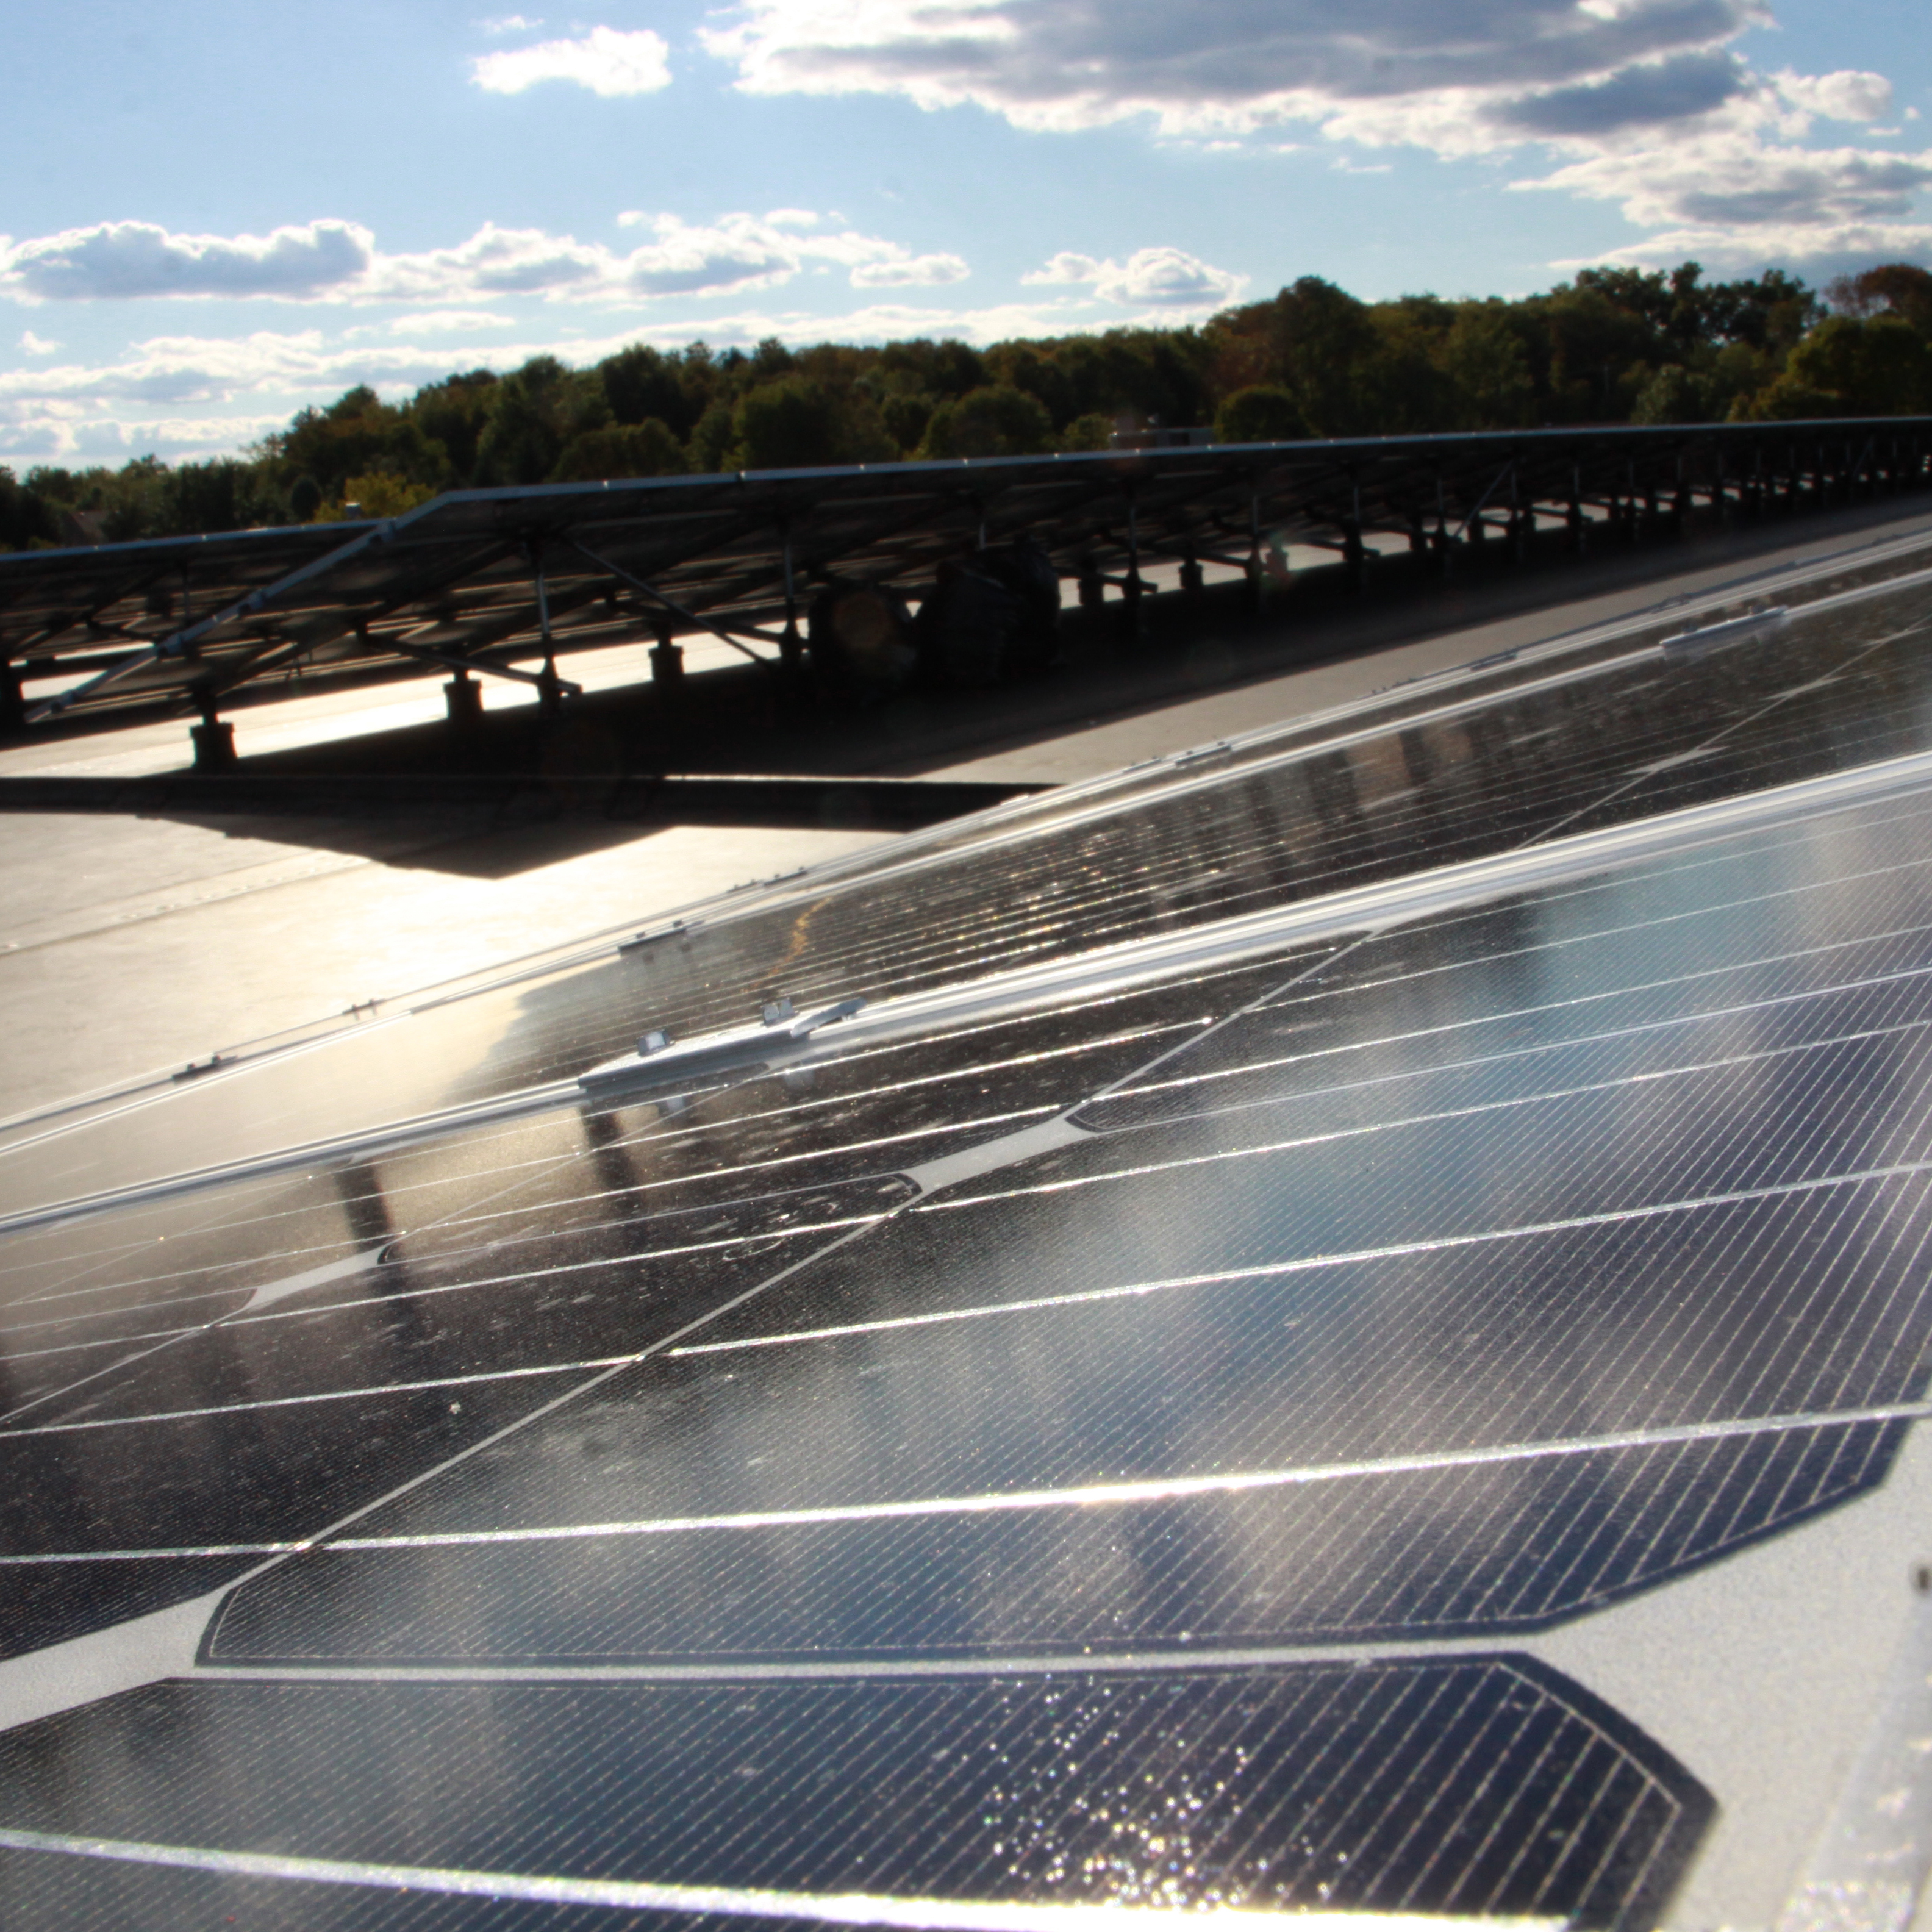 Solar panels on UPS facility in Parsippany, New Jersey, United States